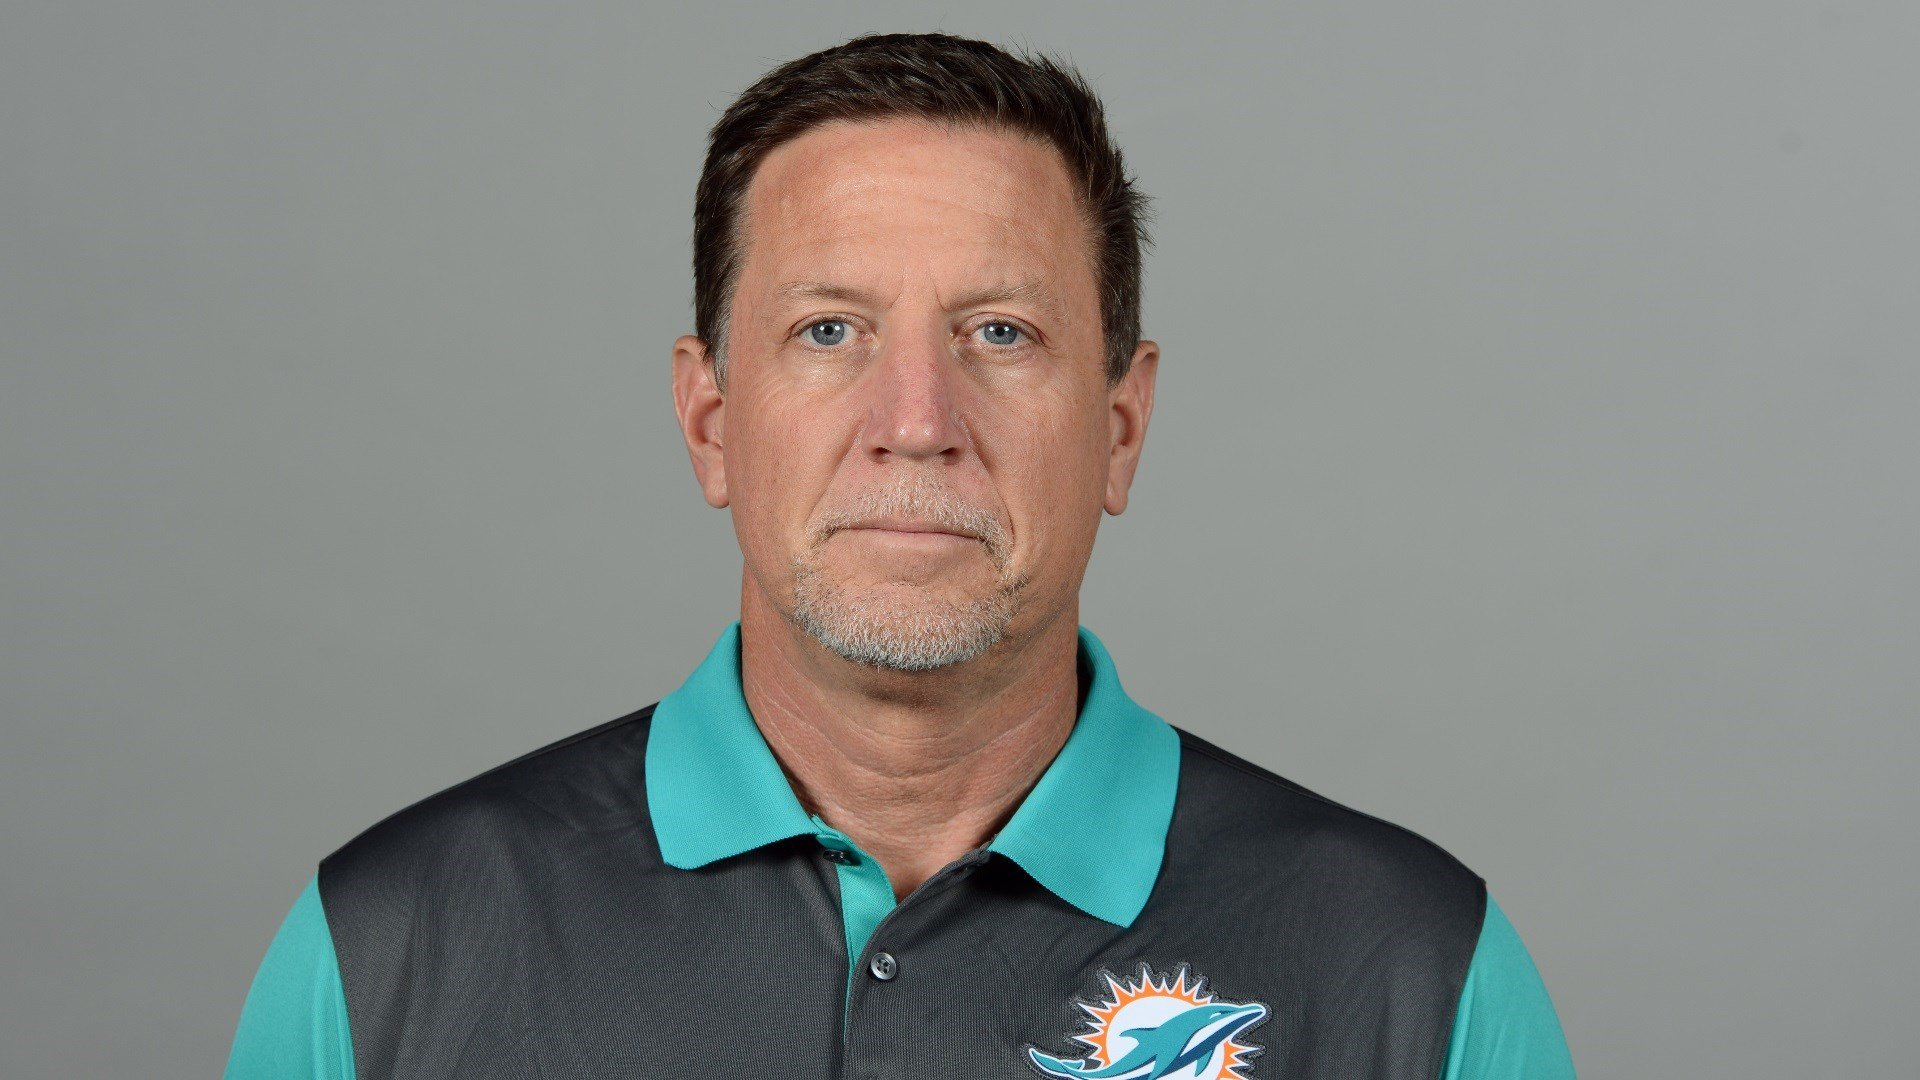 2016 photo of Chris Foerster of the Miami Dolphins NFL football team. (AP Photo)